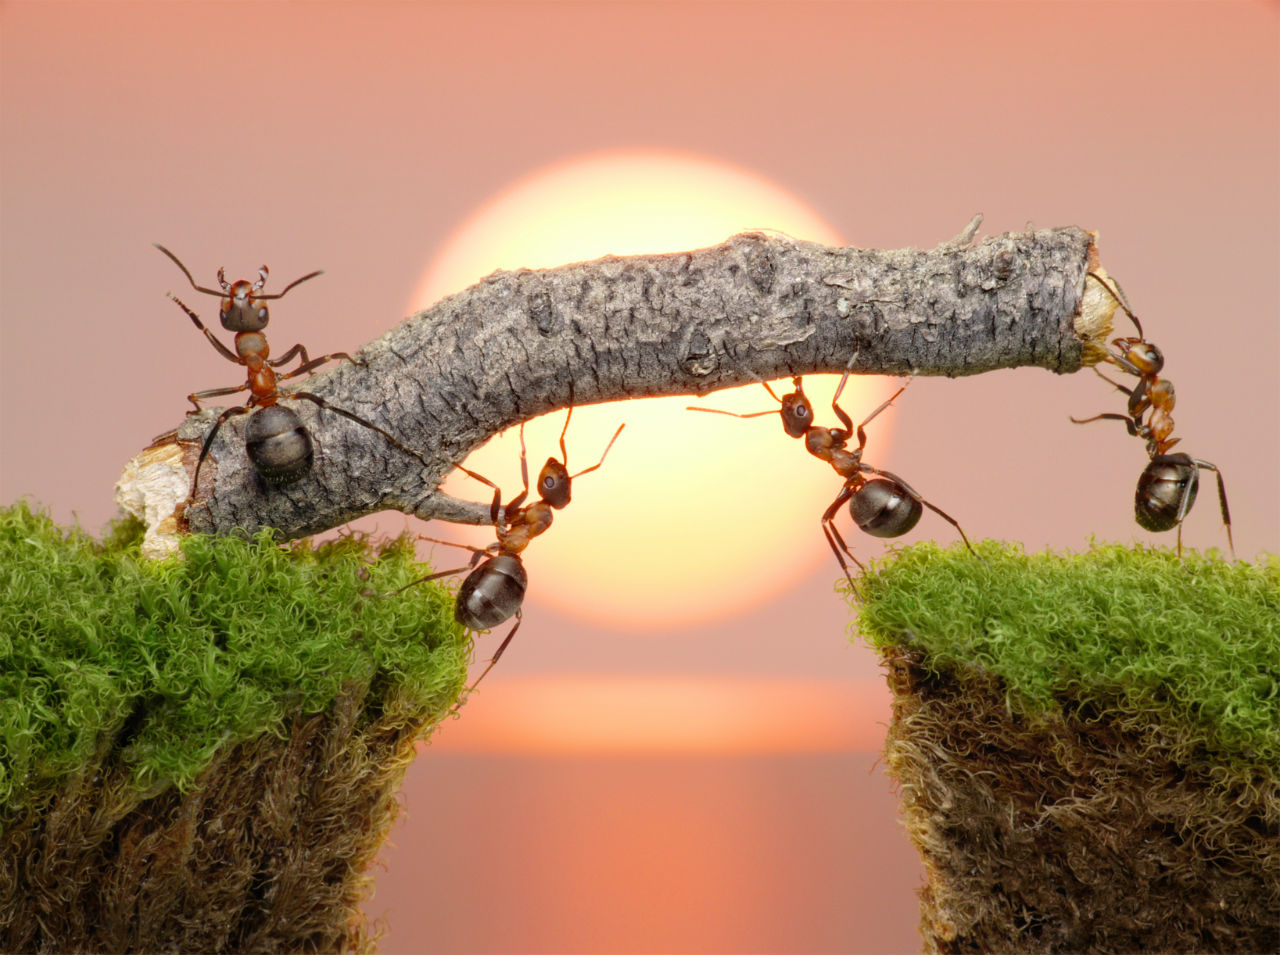 The Ant and the Kingdom of Heaven